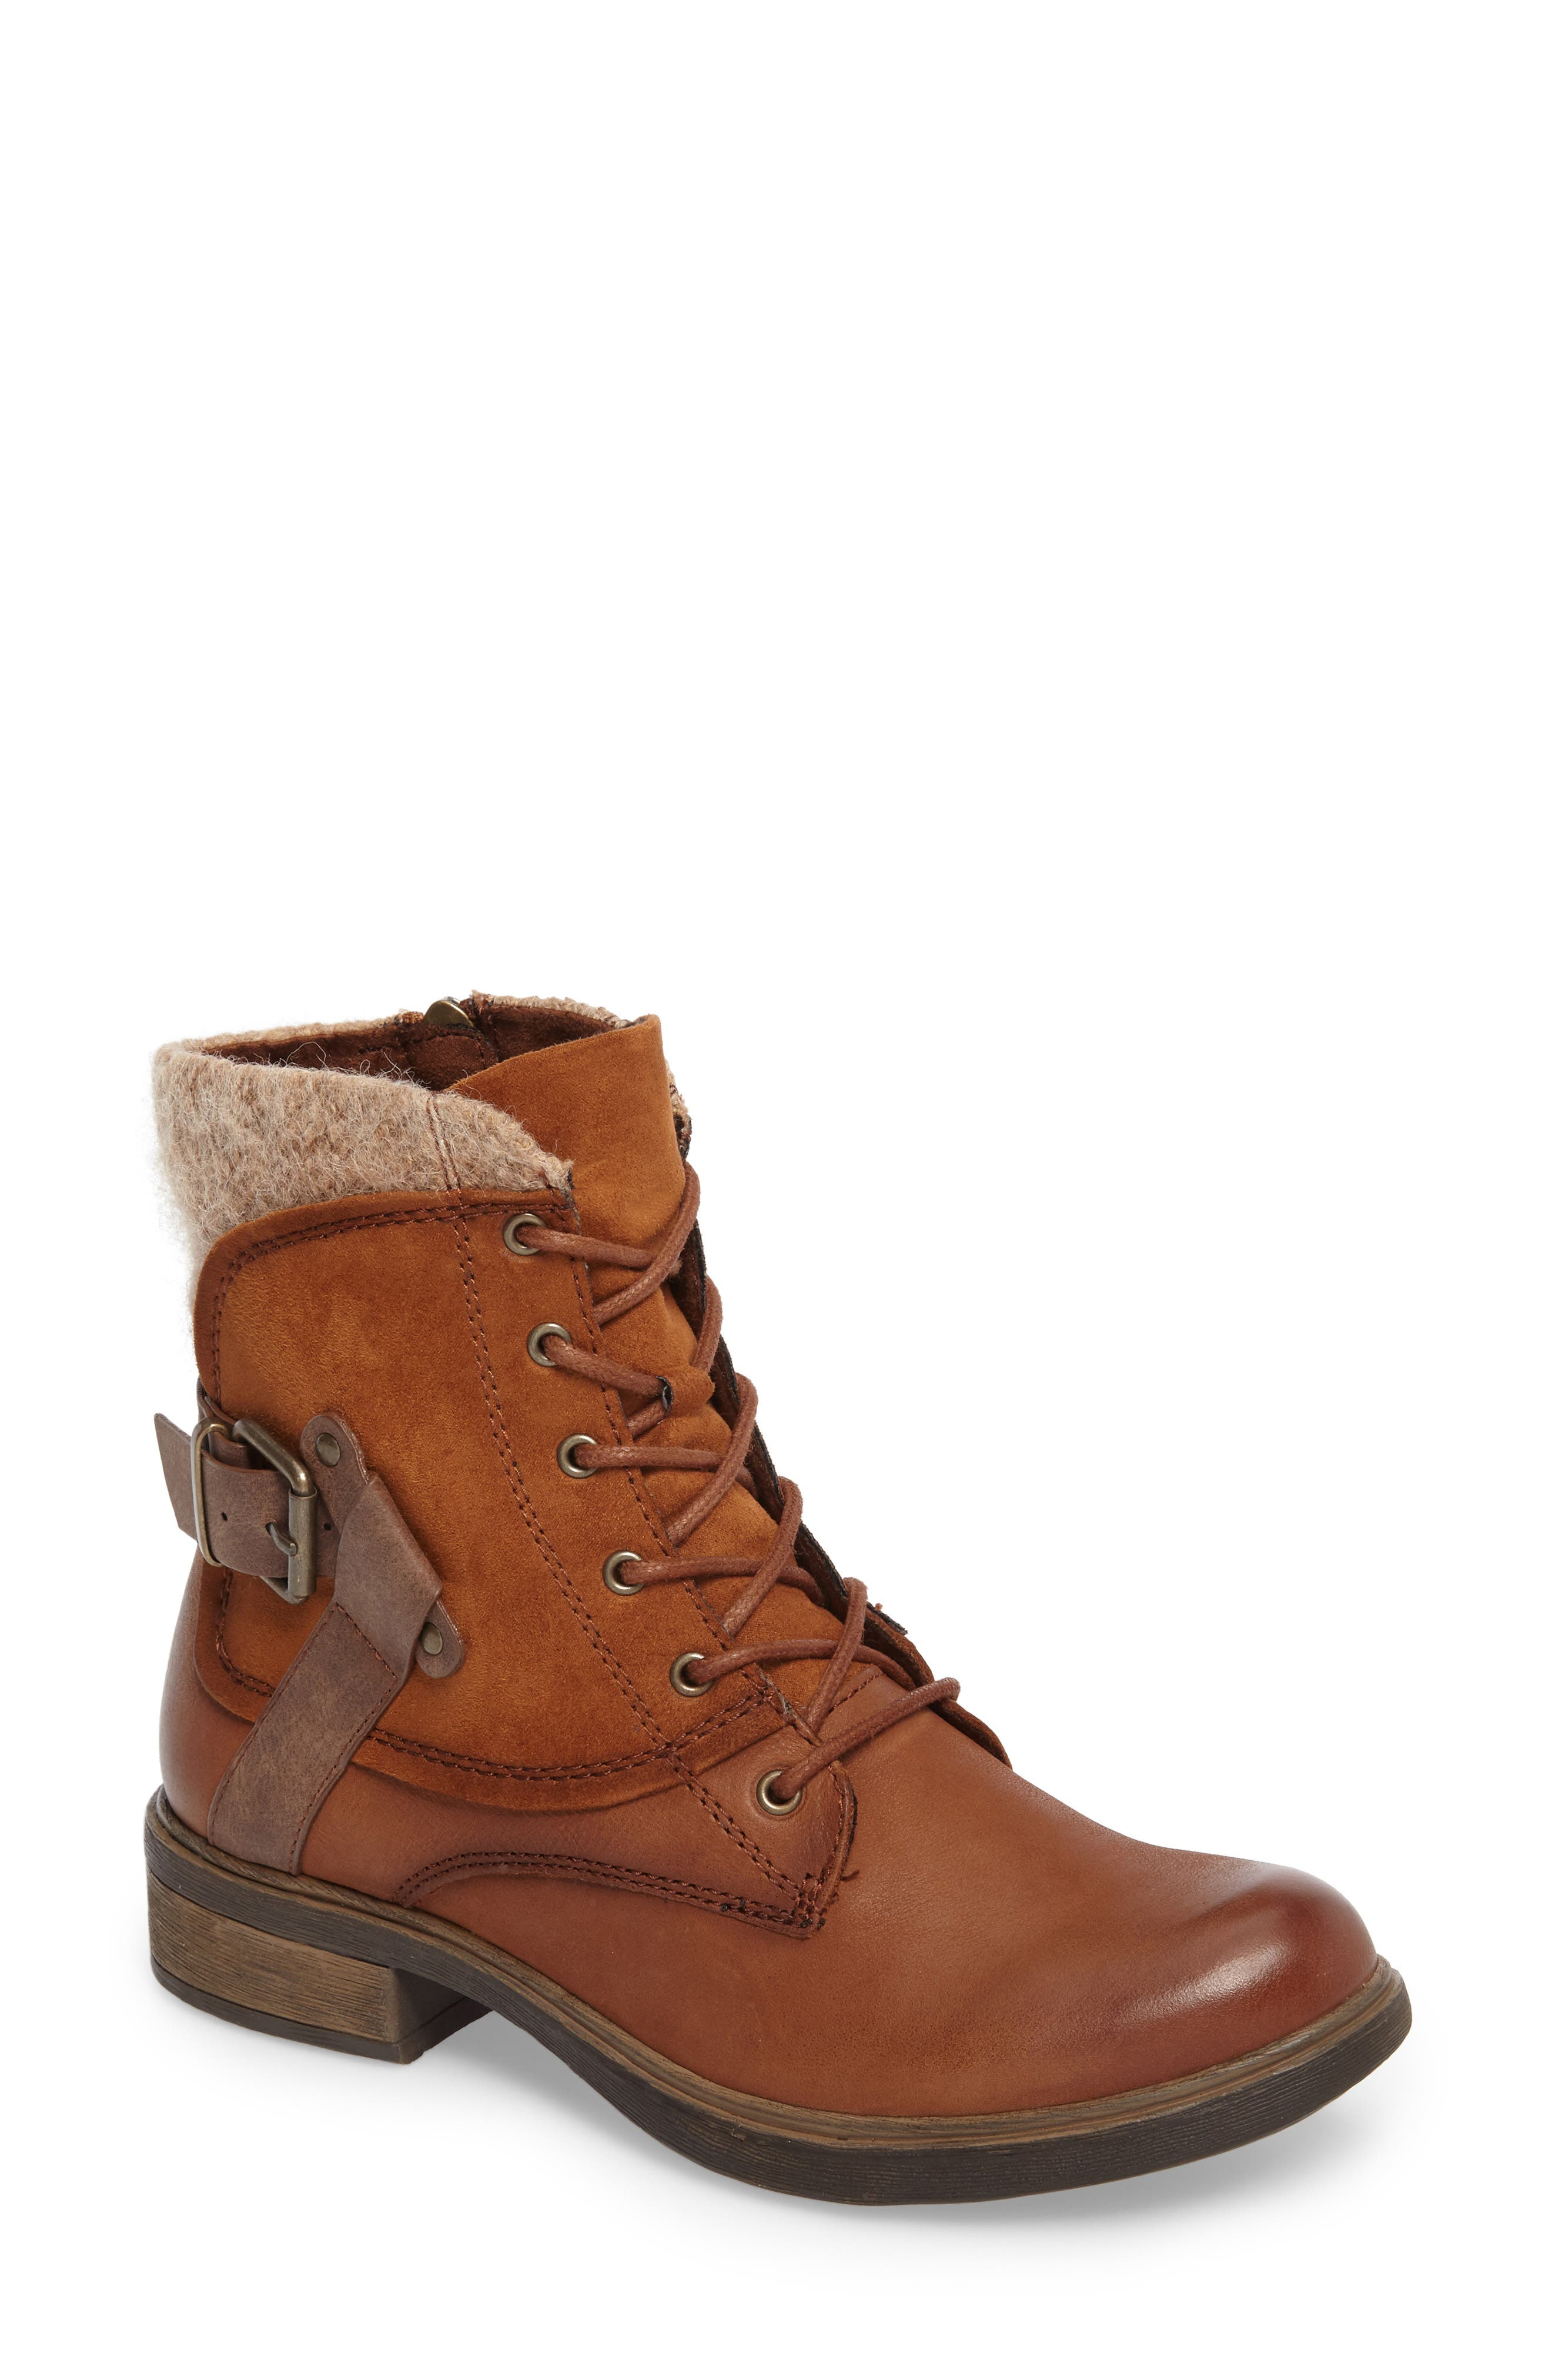 Helios Lace-Up Bootie,                             Main thumbnail 1, color,                             Muscat Leather